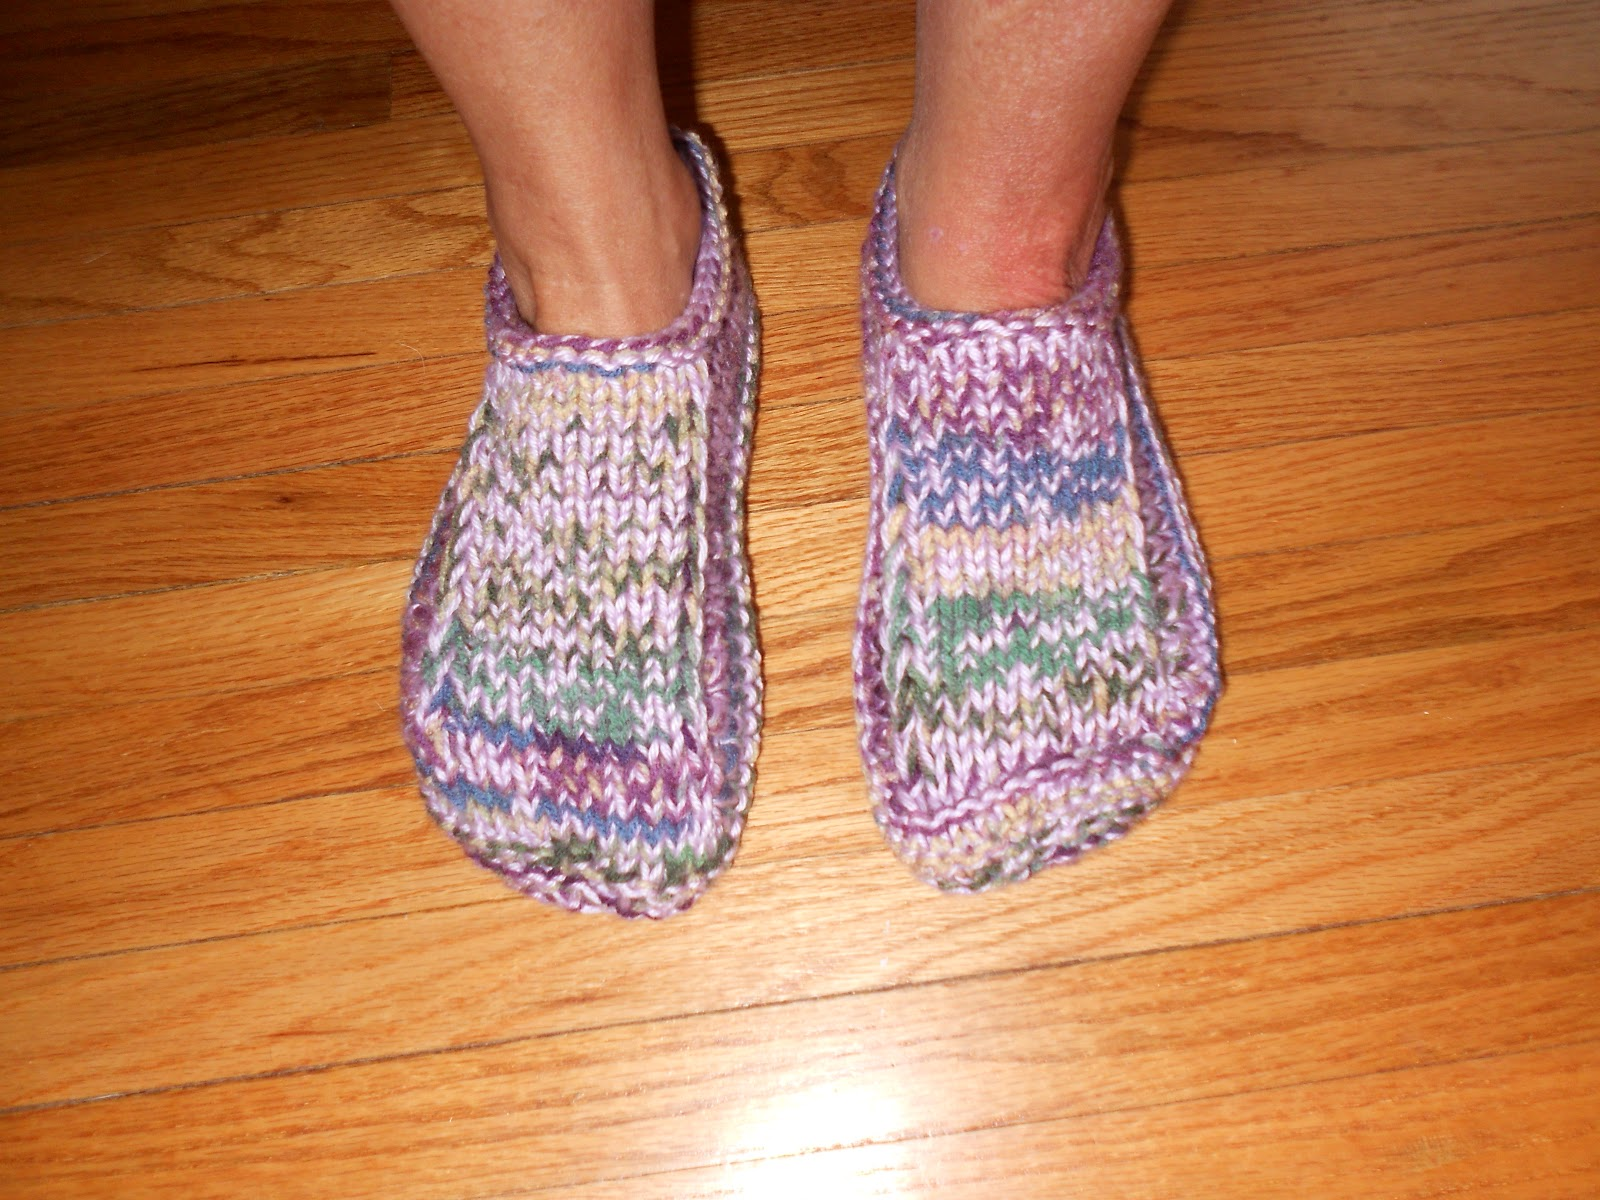 Knitting II: Cozy Toes